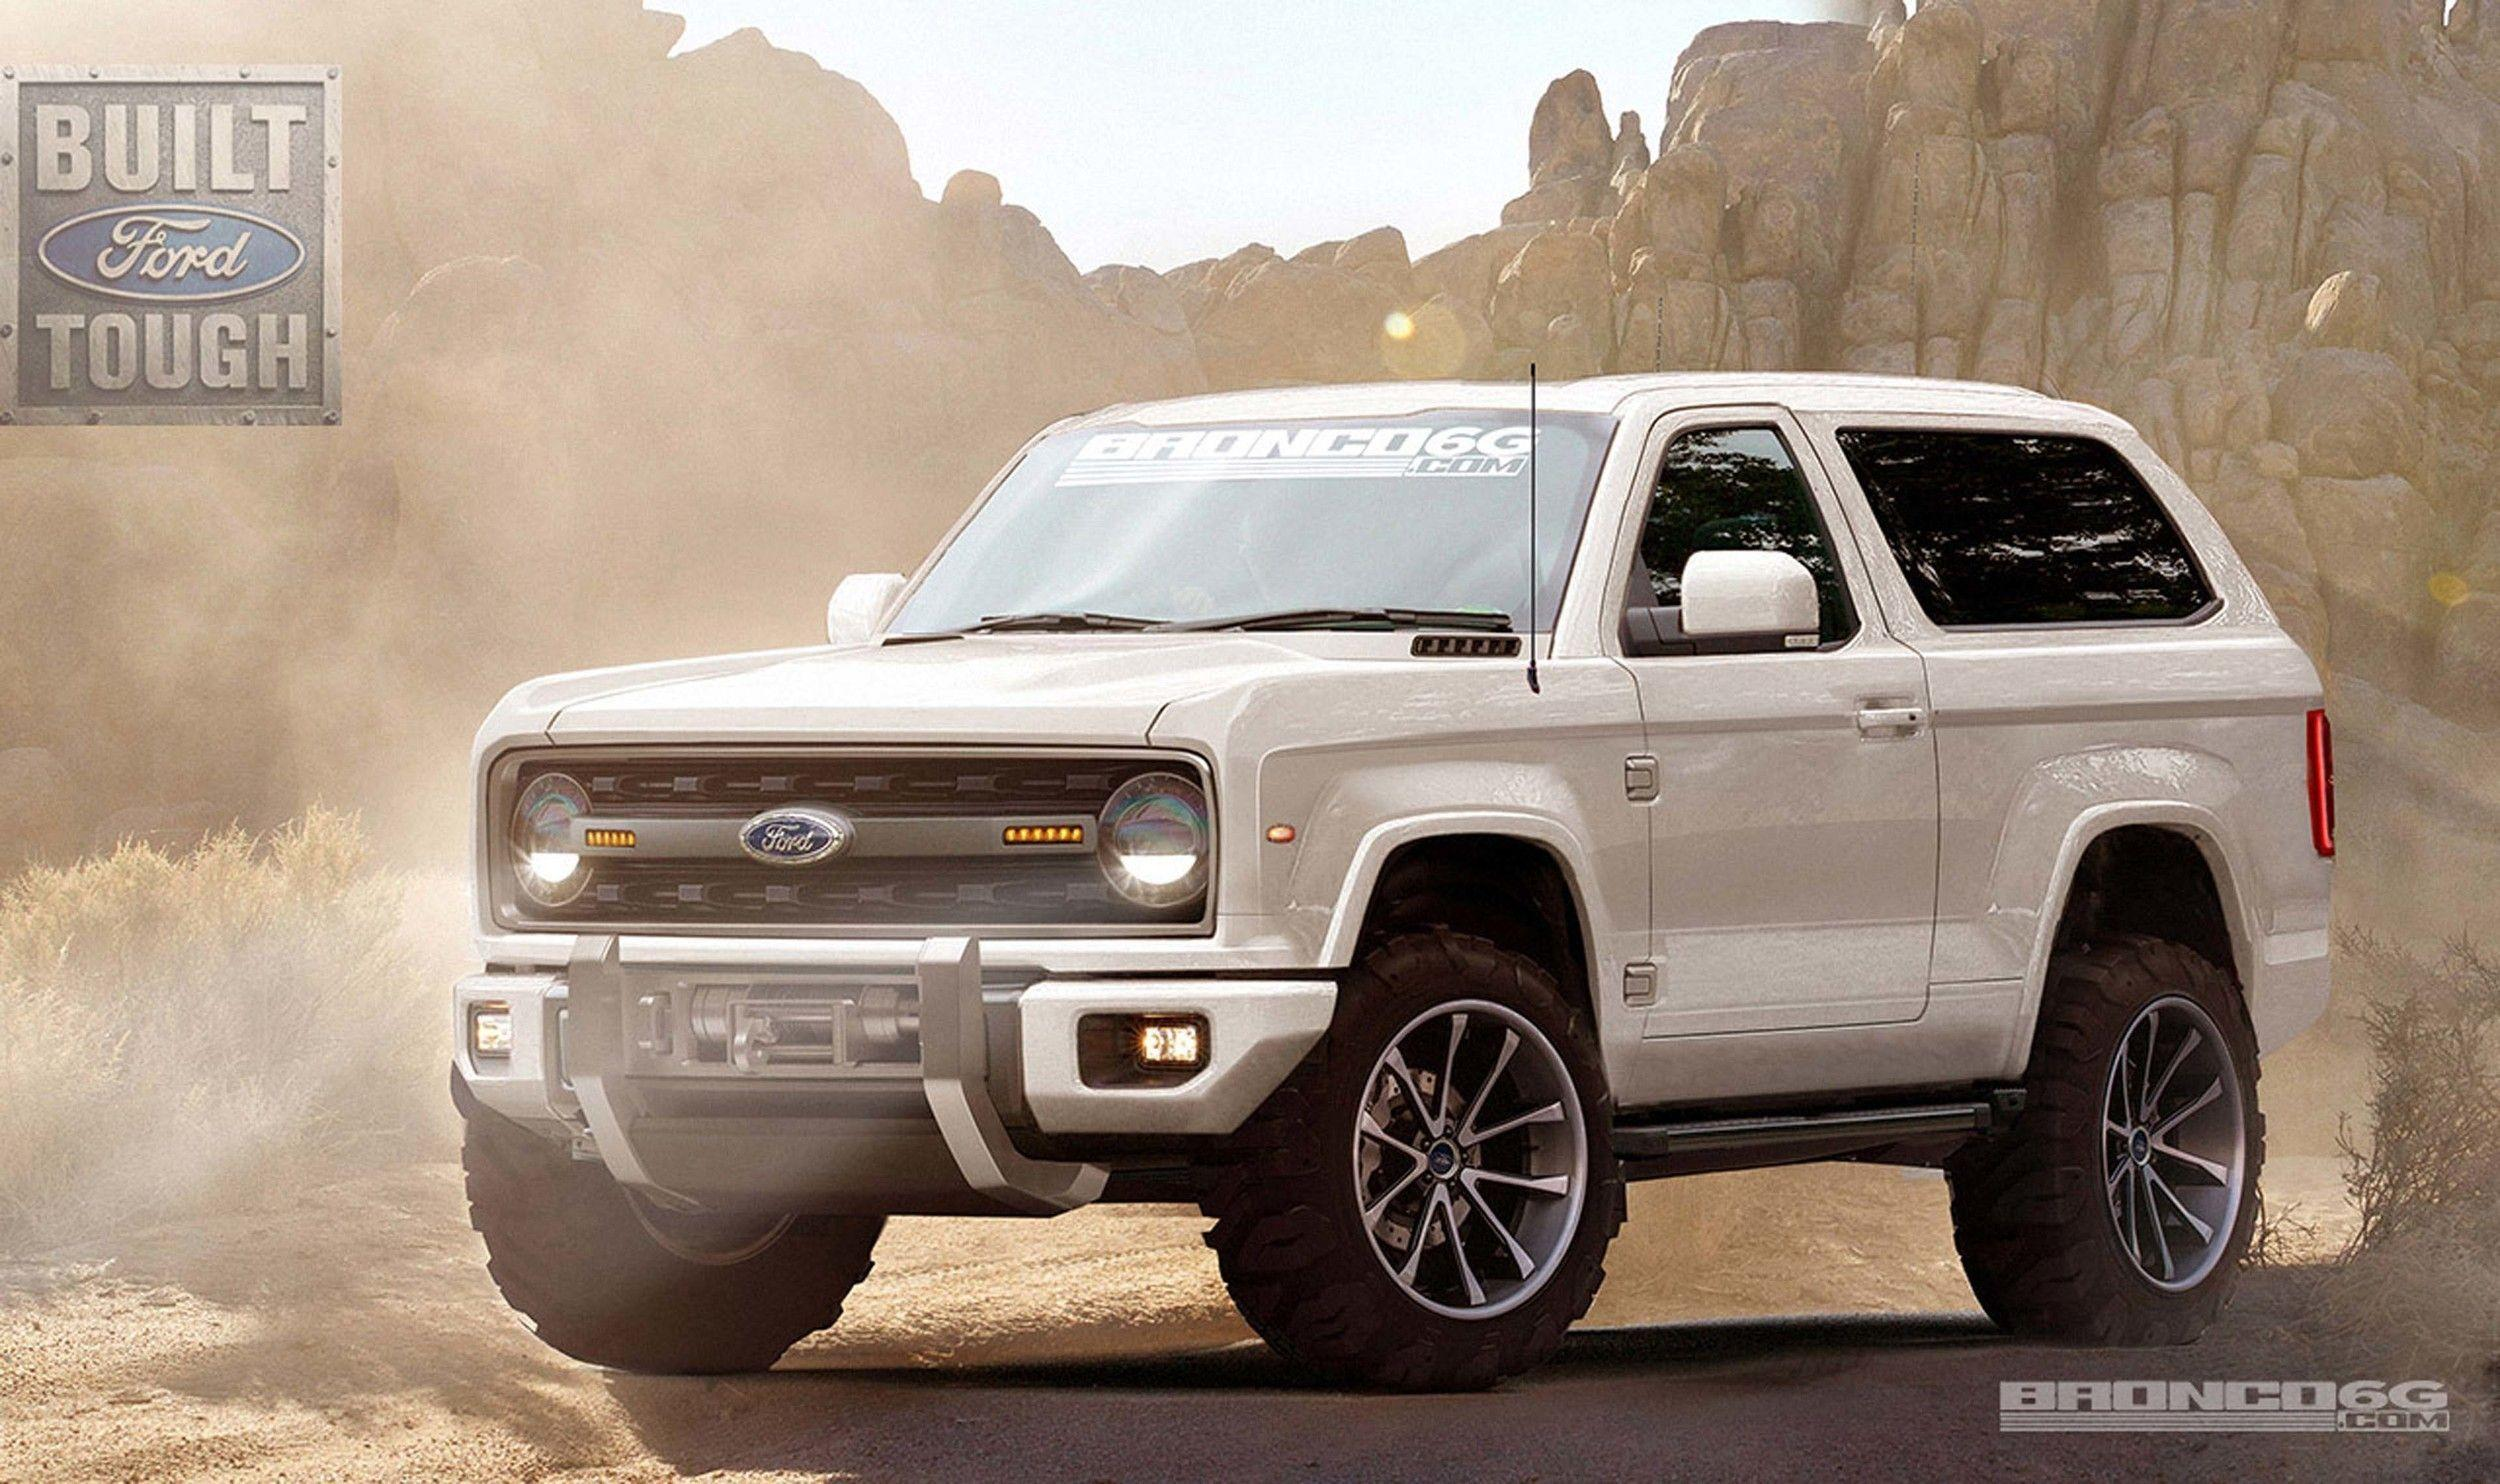 2020 Ford Bronco concept by Bronco6g.com [2500 x 1484] HD Wallpaper ...